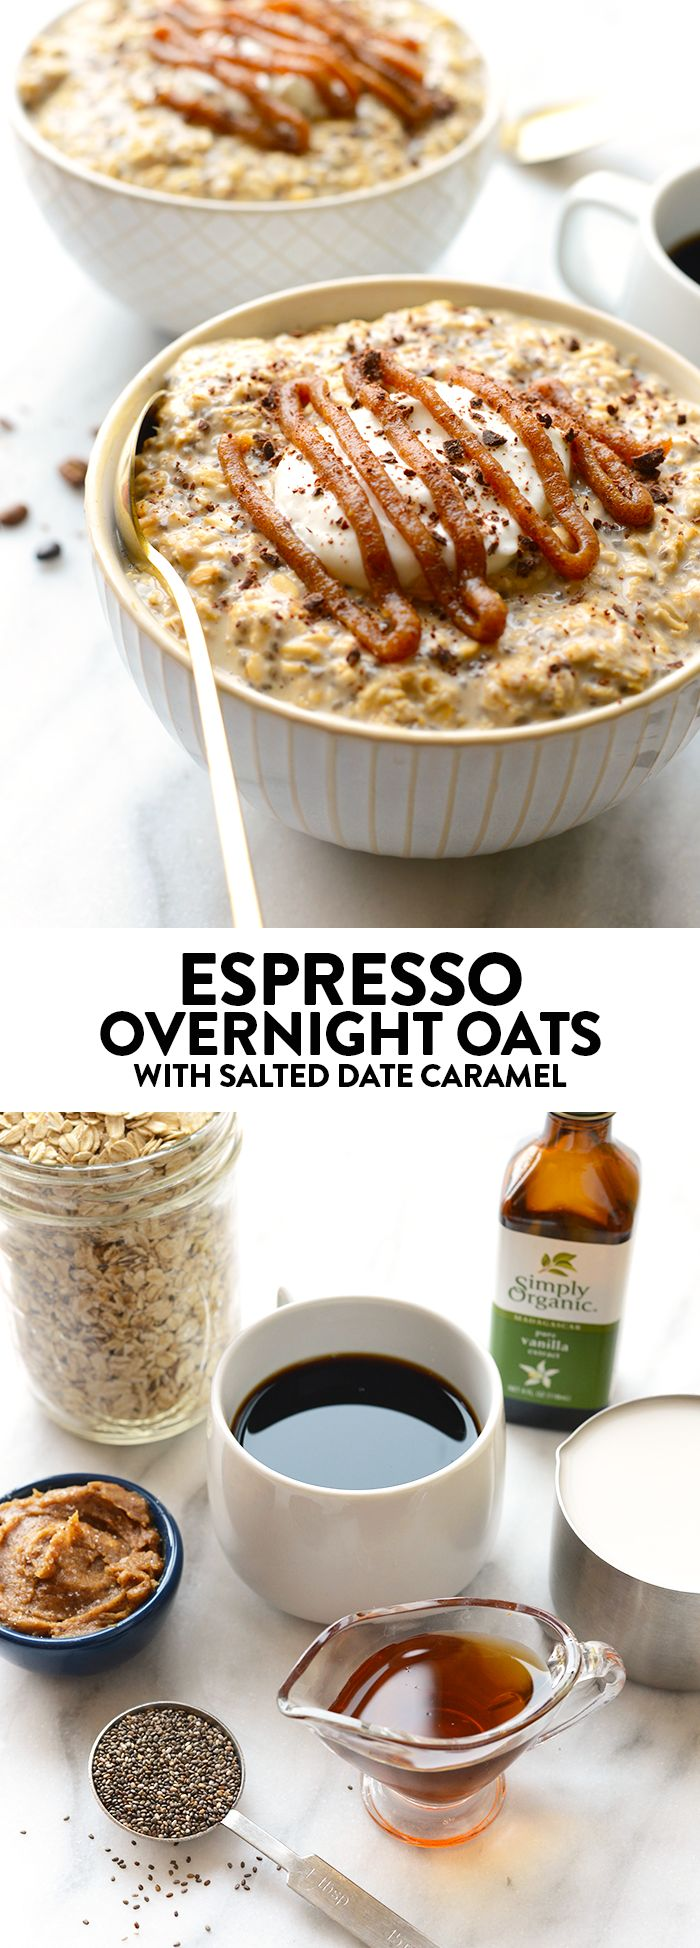 Espresso Overnight Oats with Salted Date Caramel - Soak your oats in brewed coffee overnight and top them with salted date caramel for a yummy treat in the morning. (Breakfast Coffee)